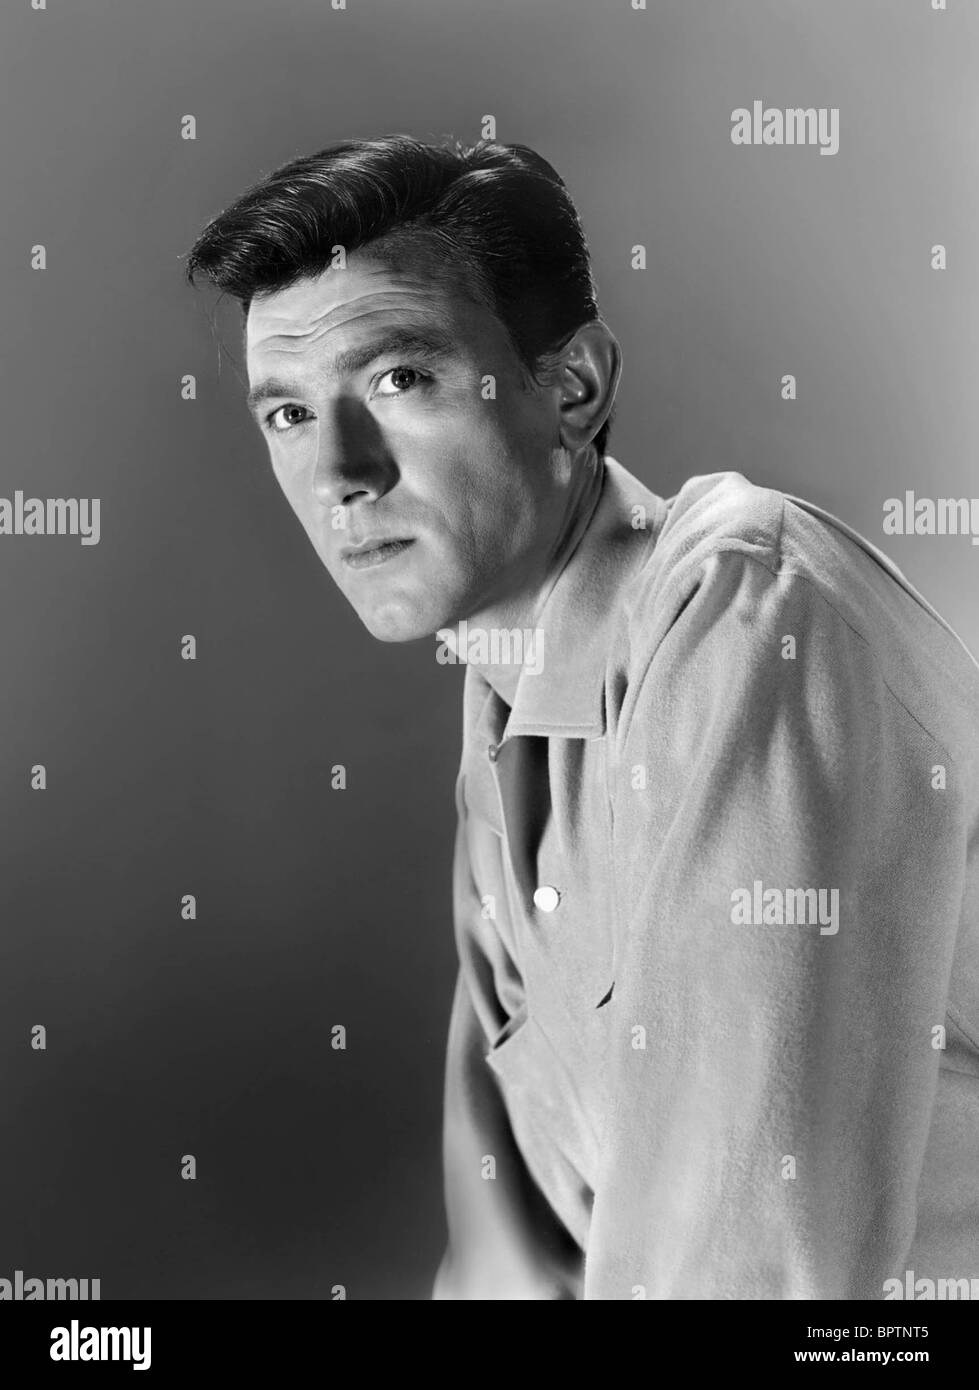 LAURENCE HARVEY ACTOR (1964) - Stock Image